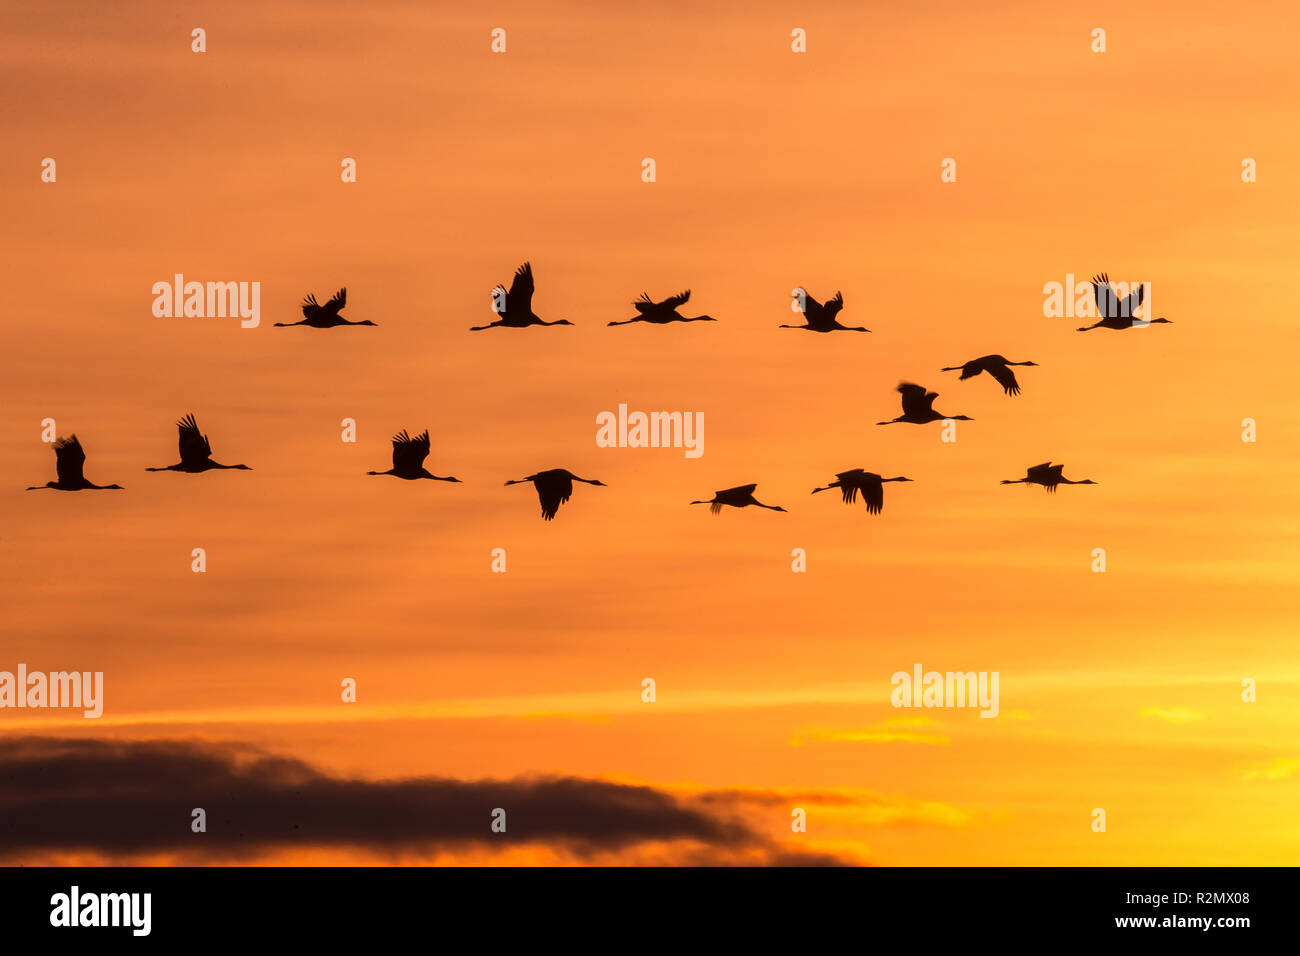 Group of cranes in front of rising sun at the red sky - Stock Image